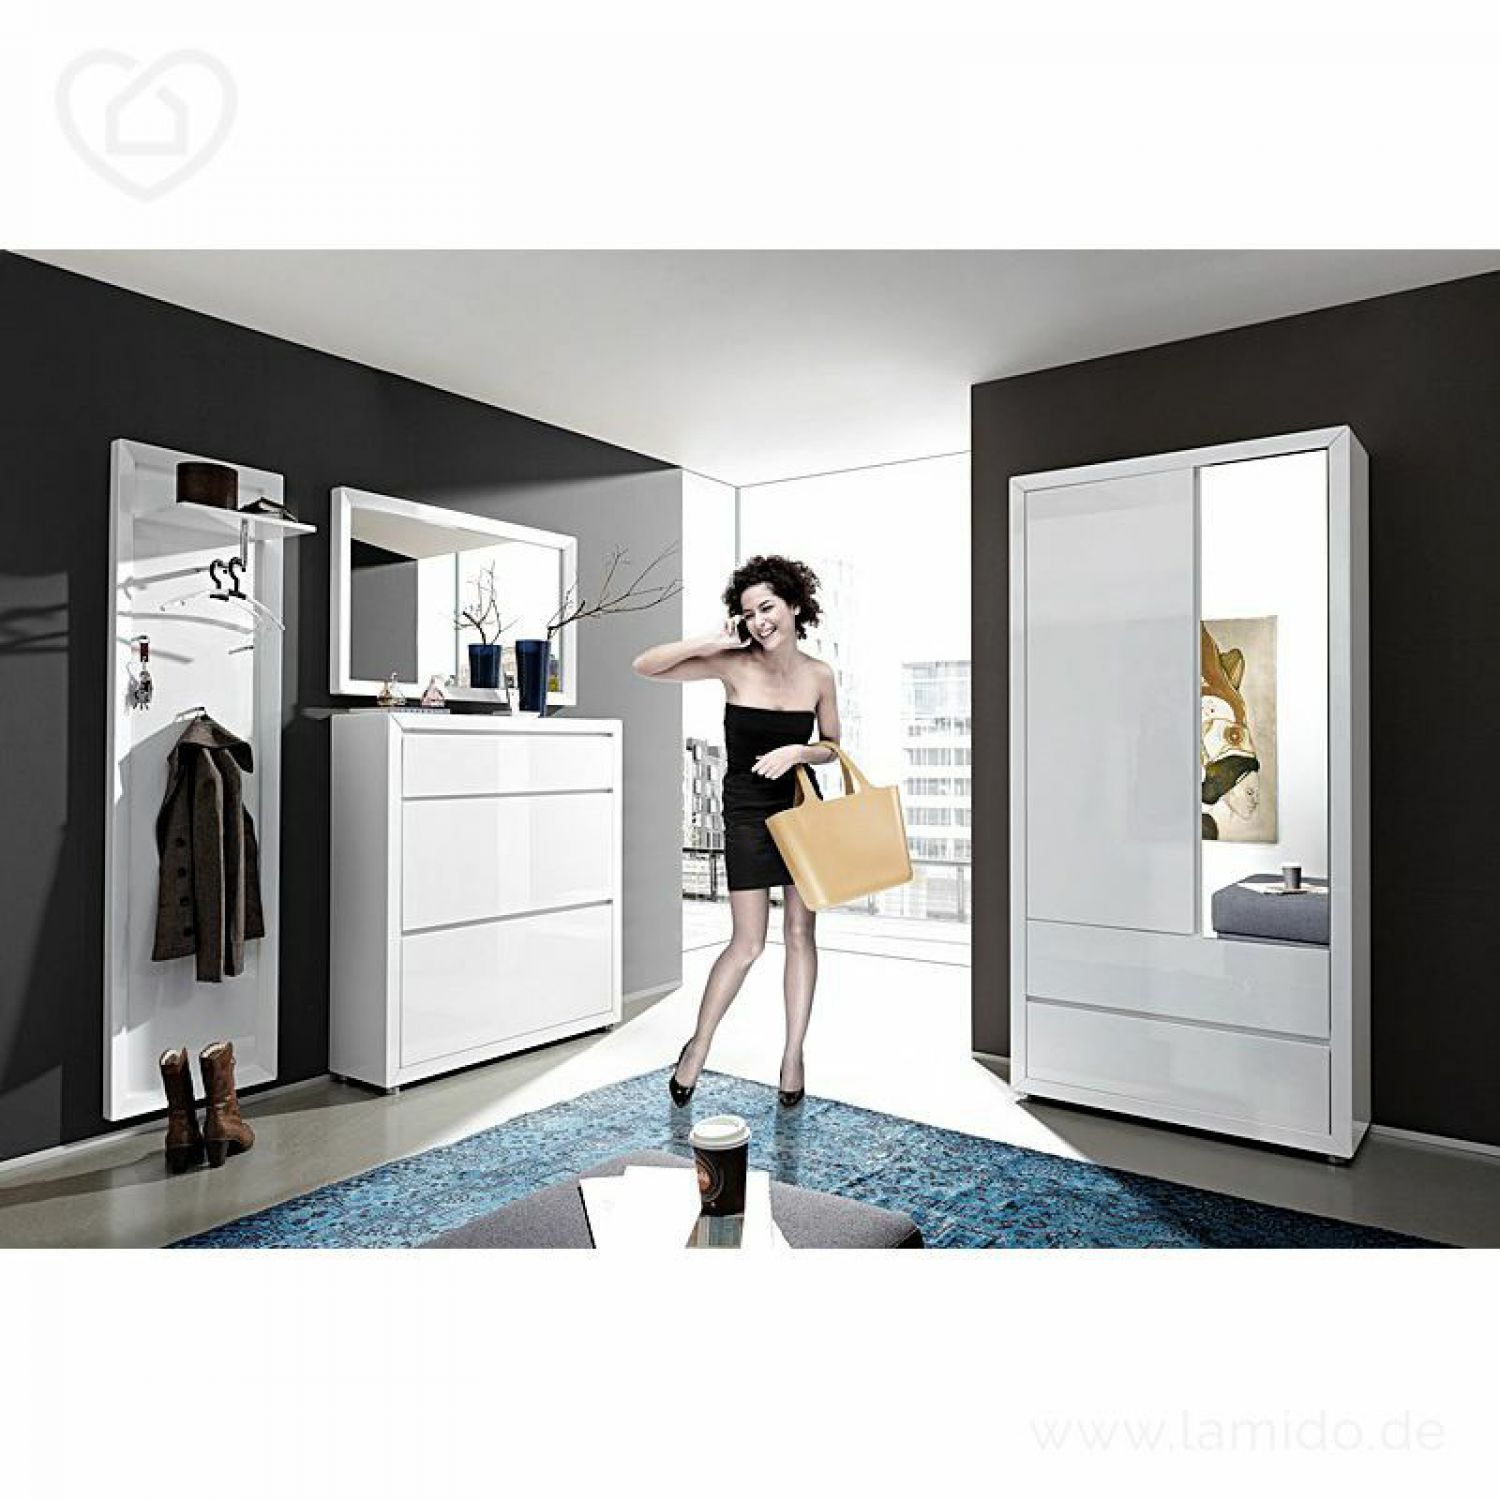 garderoben schuhschrank spiegel set lack hochglanz wei schuhkomode flurm bel ebay. Black Bedroom Furniture Sets. Home Design Ideas